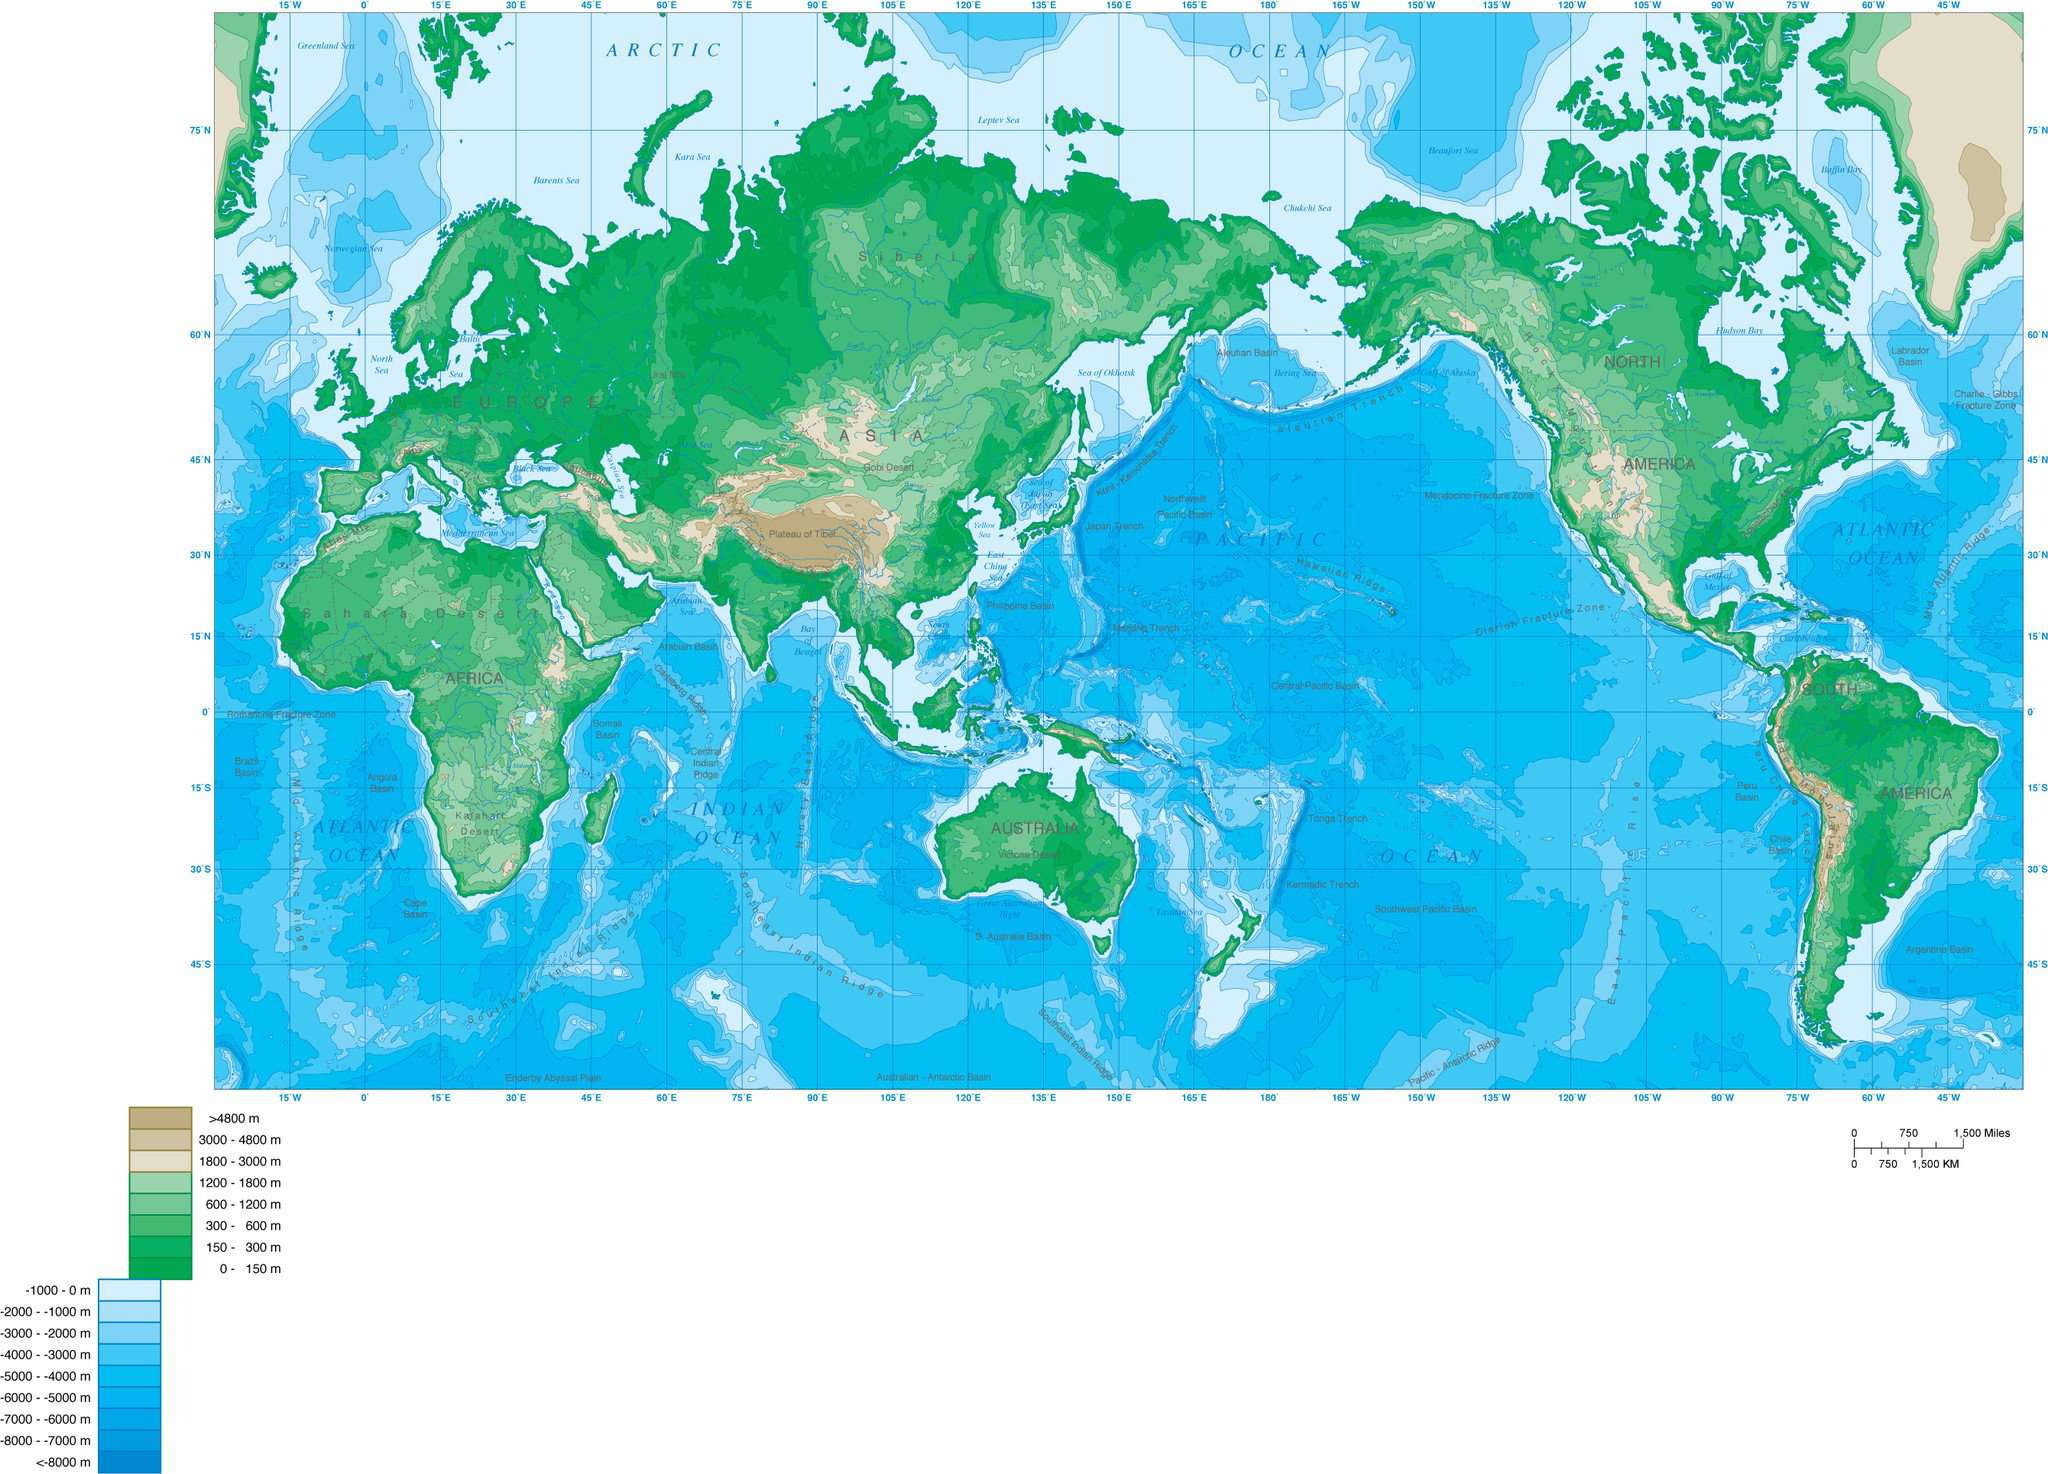 World Map with Contours - Mercator Projection